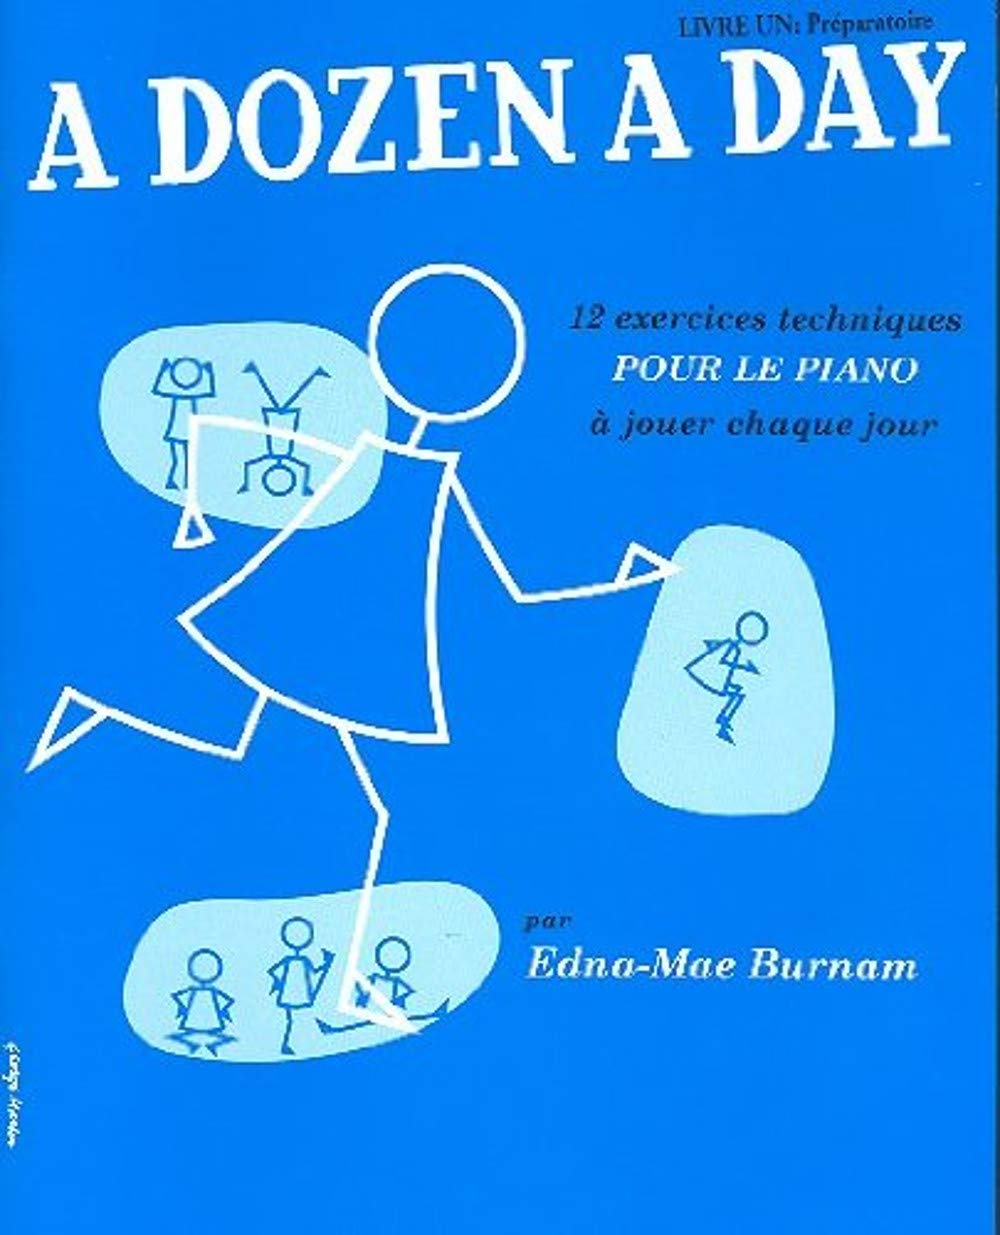 THE WILLIS MUSIC COMPANY BURNAM EDNA-MAE - A DOZEN A DAY (VOL.1: PREPARATOIRE) EN FRANCAIS